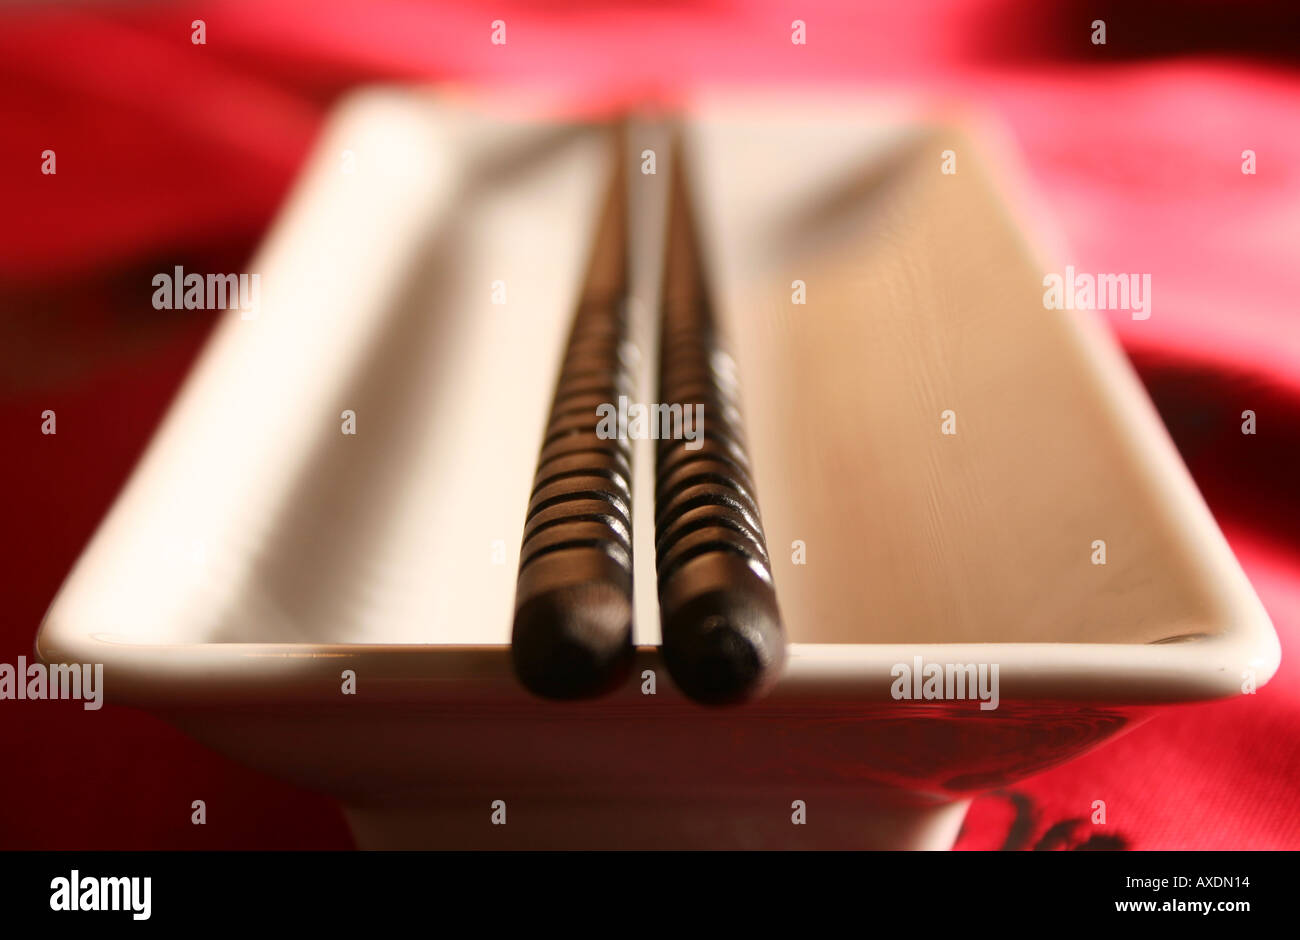 Chopsticks on a bowl in a formal dinner setting Stock Photo